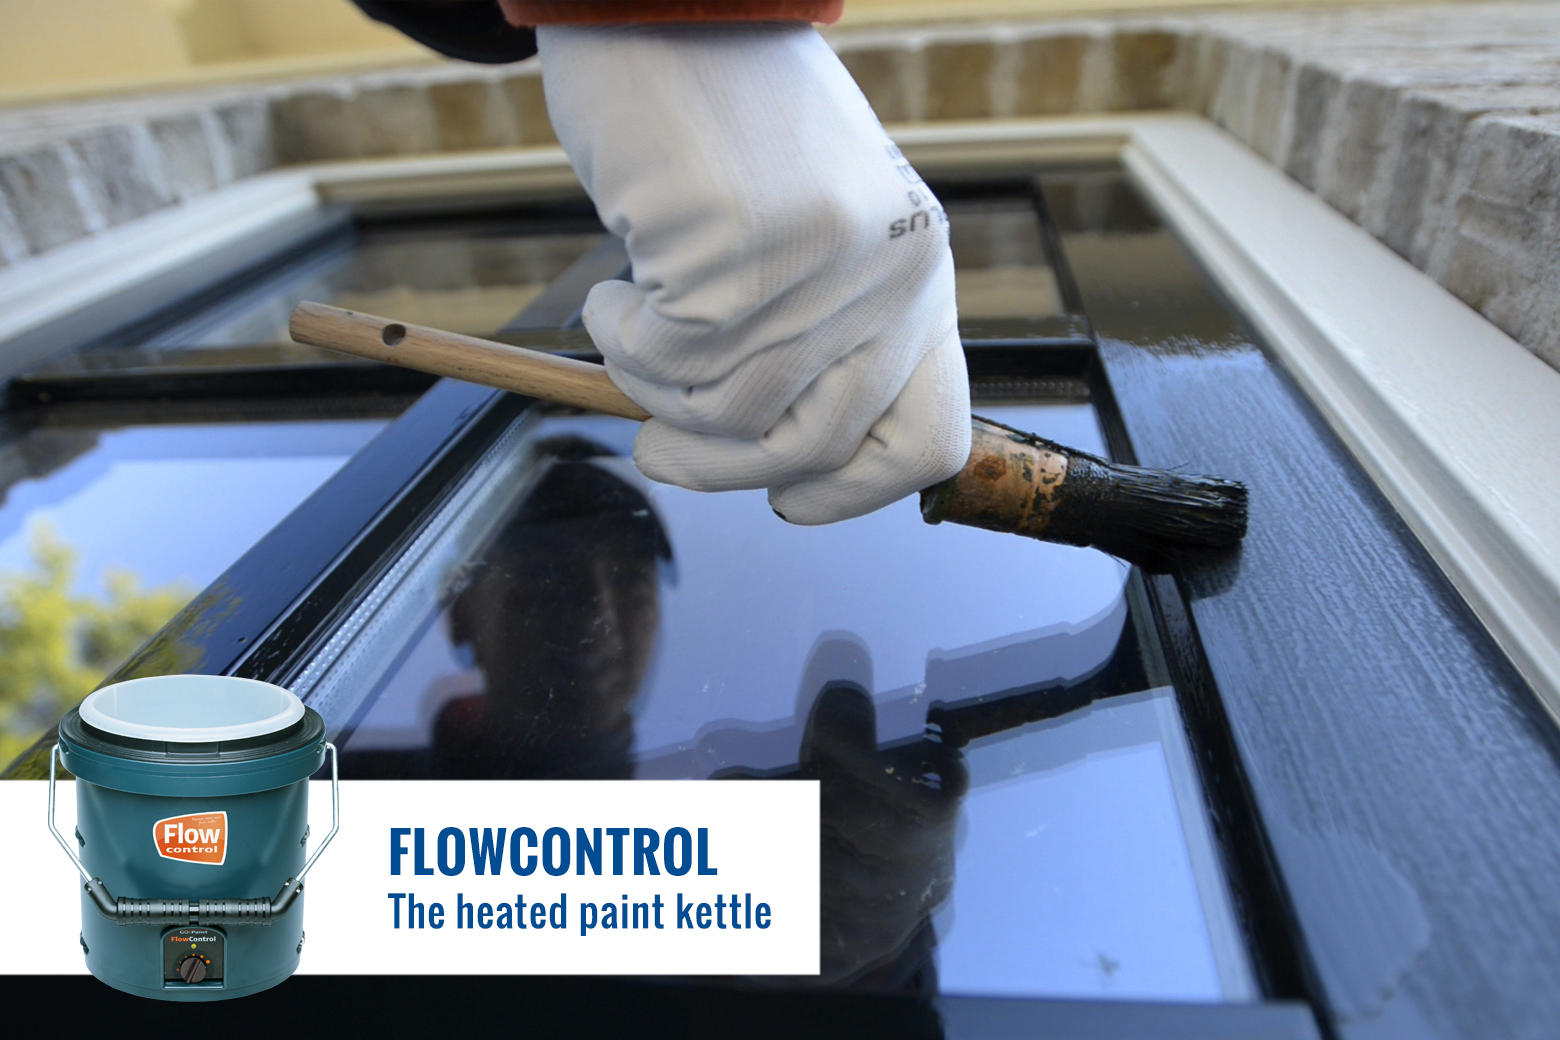 Get better paint flow by warming up the paint to 18-30 degrees Celsius.